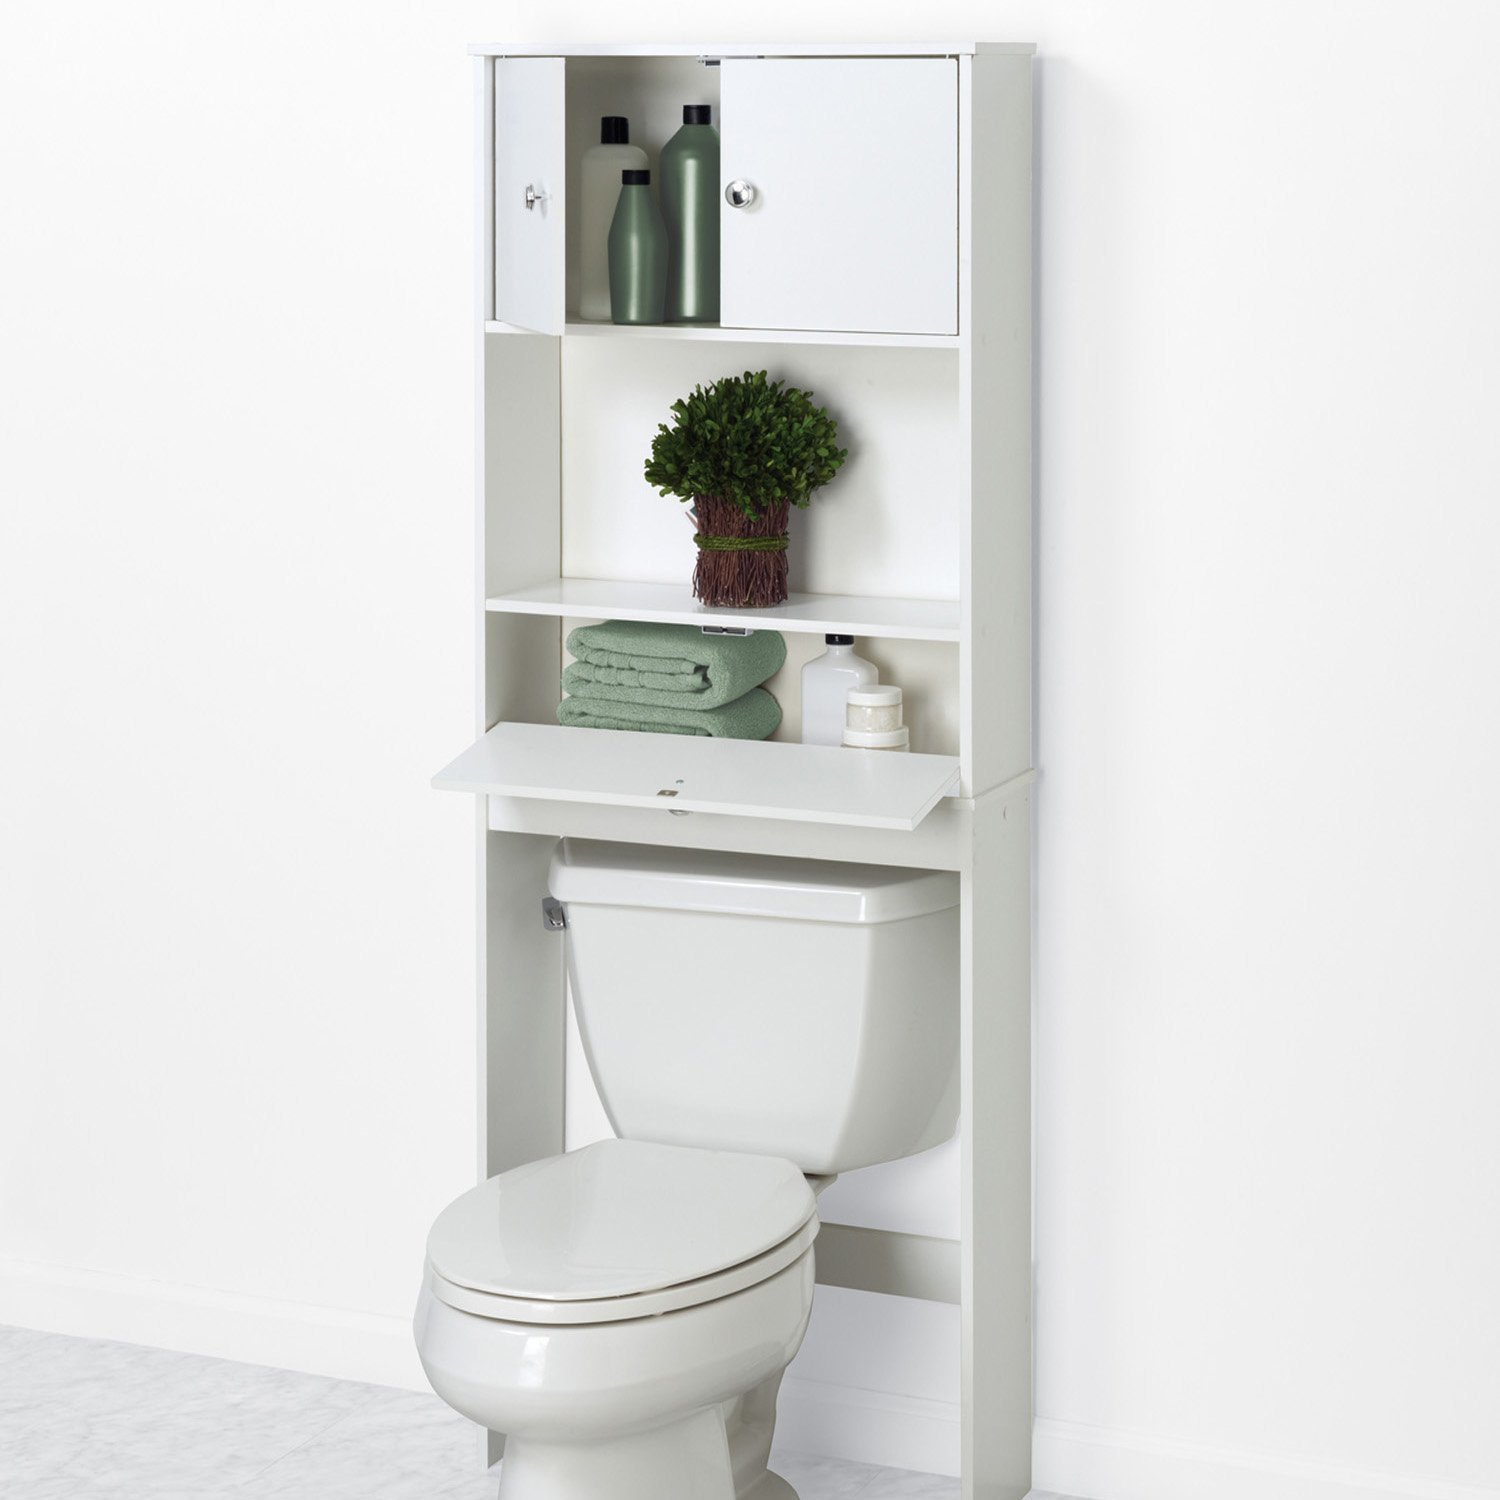 Uk Style White Bathroom Over The Toilet Space Saver Storage Cabinet   Buy  Over The Toilet Space Saver Cabinet,Over Toilet Organizer,Over Toilet ...